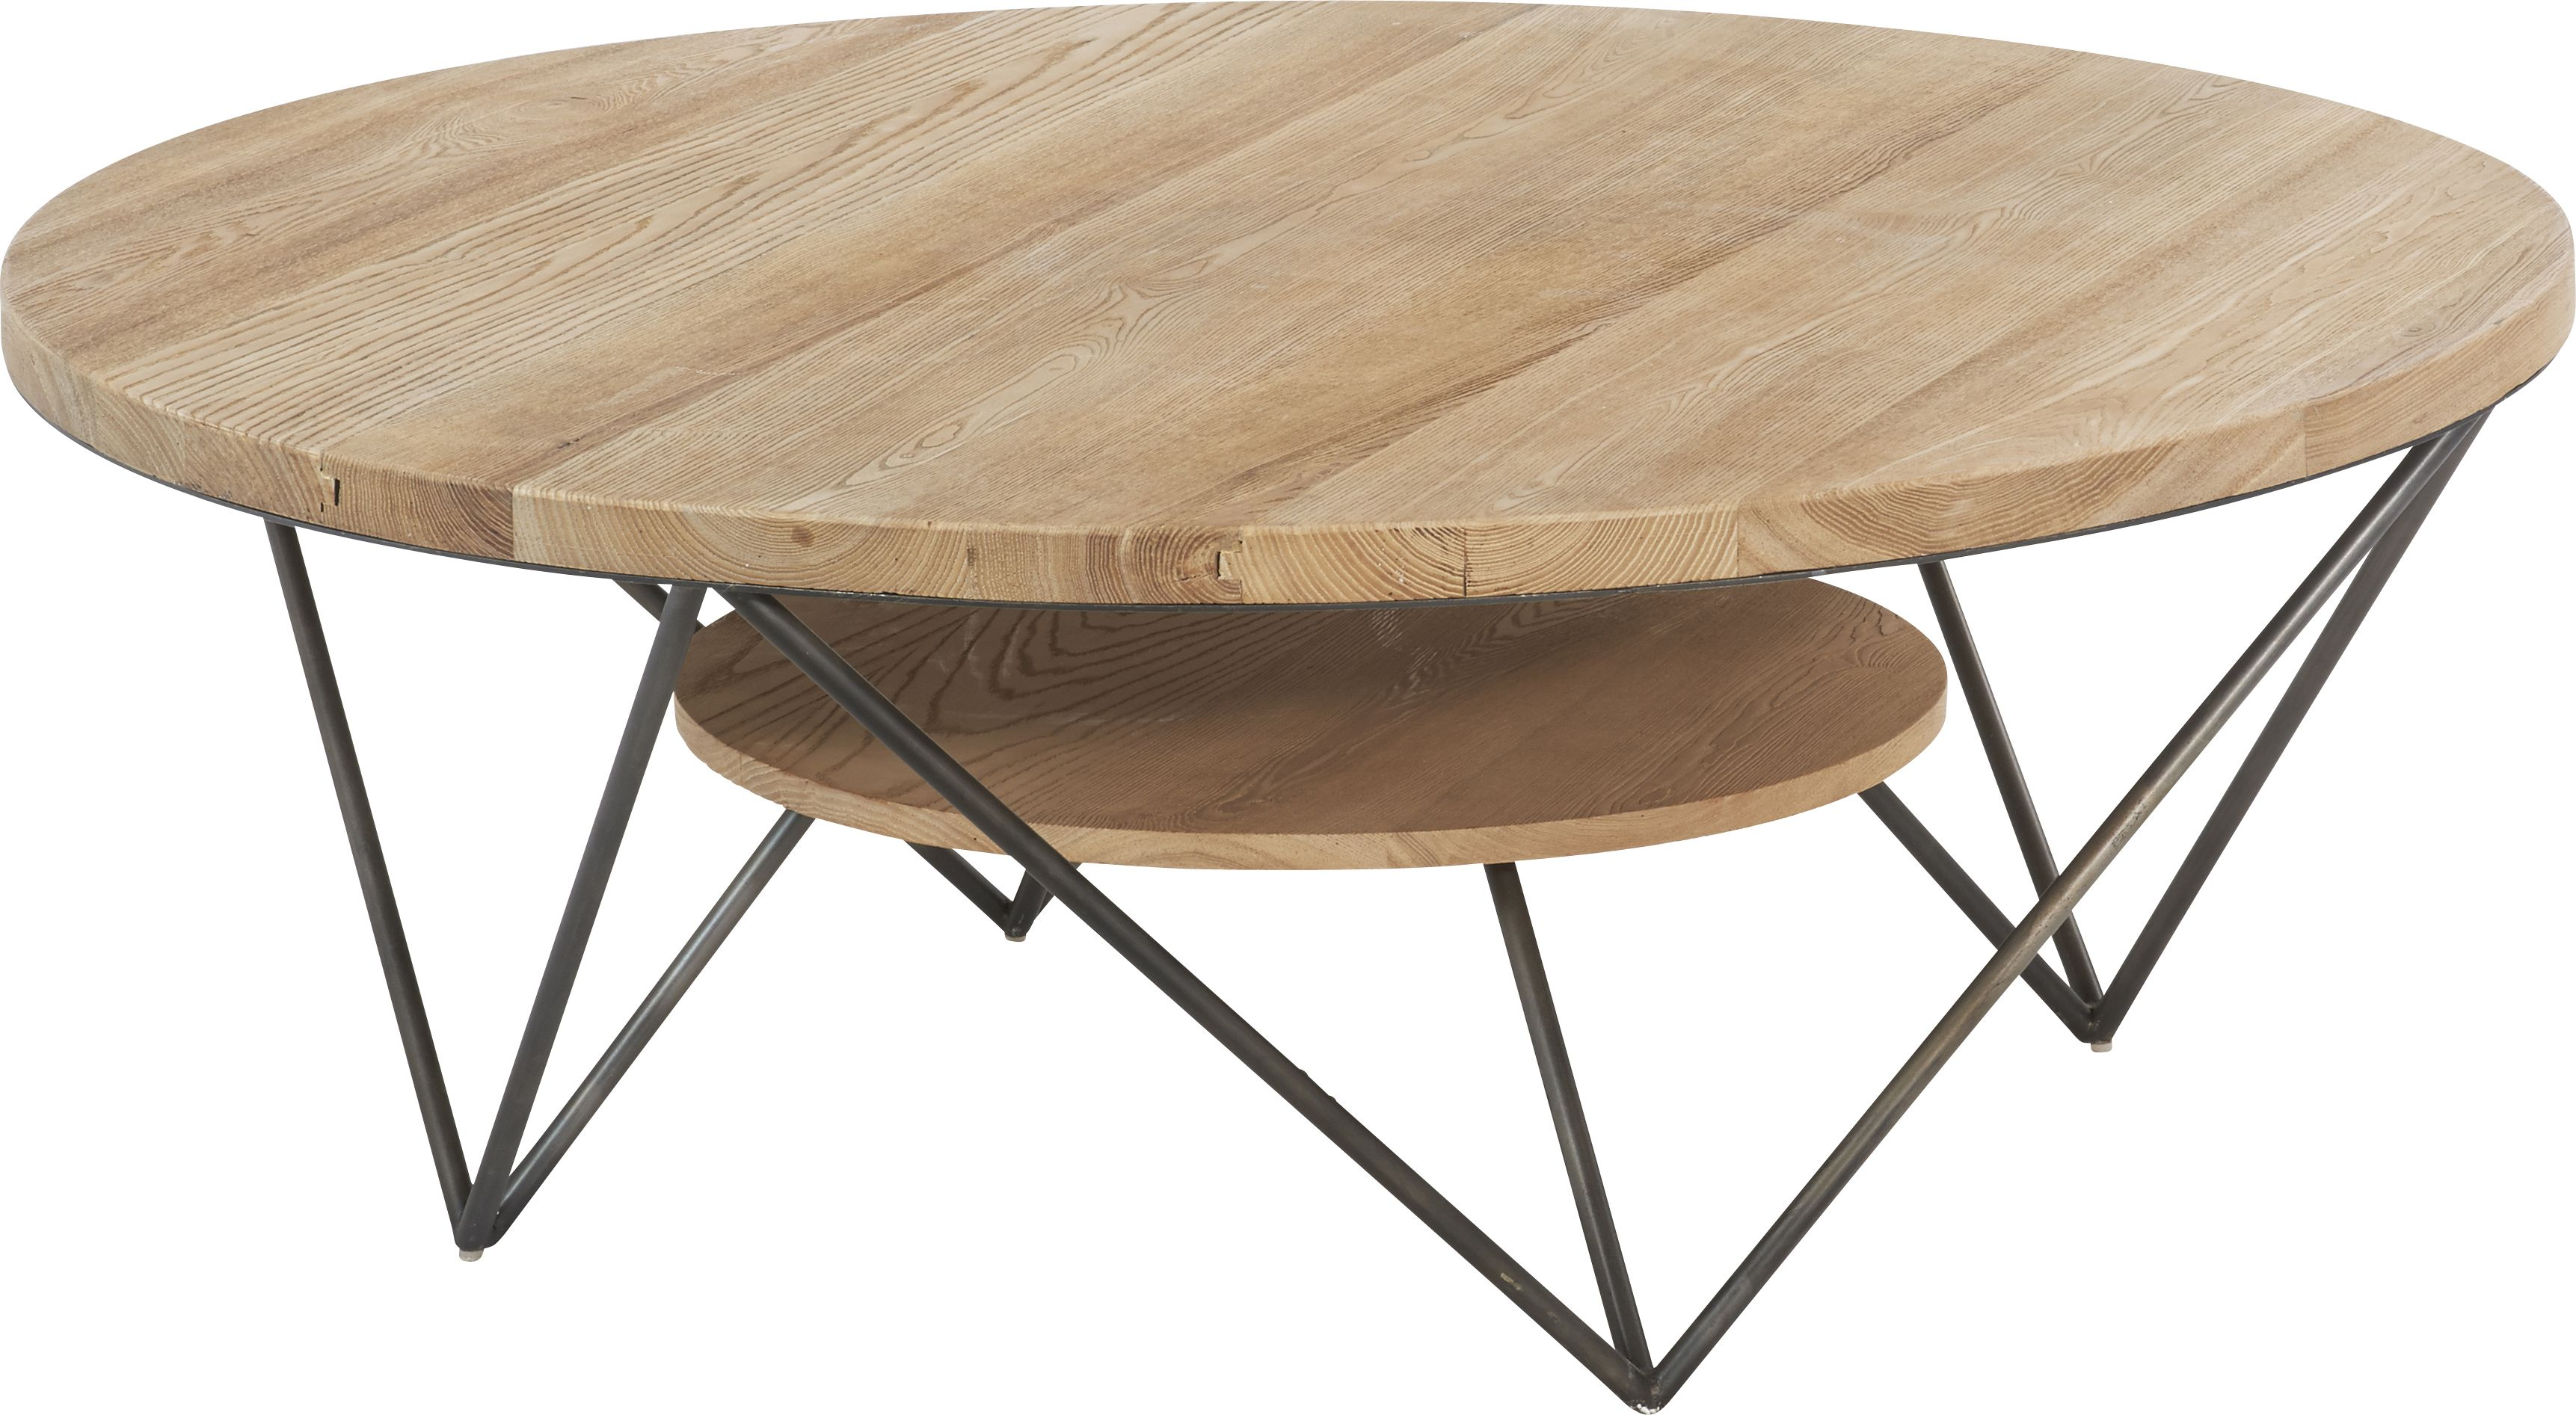 Table Basse Bois Metal Ronde Table Basse Ronde Hudson Par Hanjel Les Tables Basses Designées